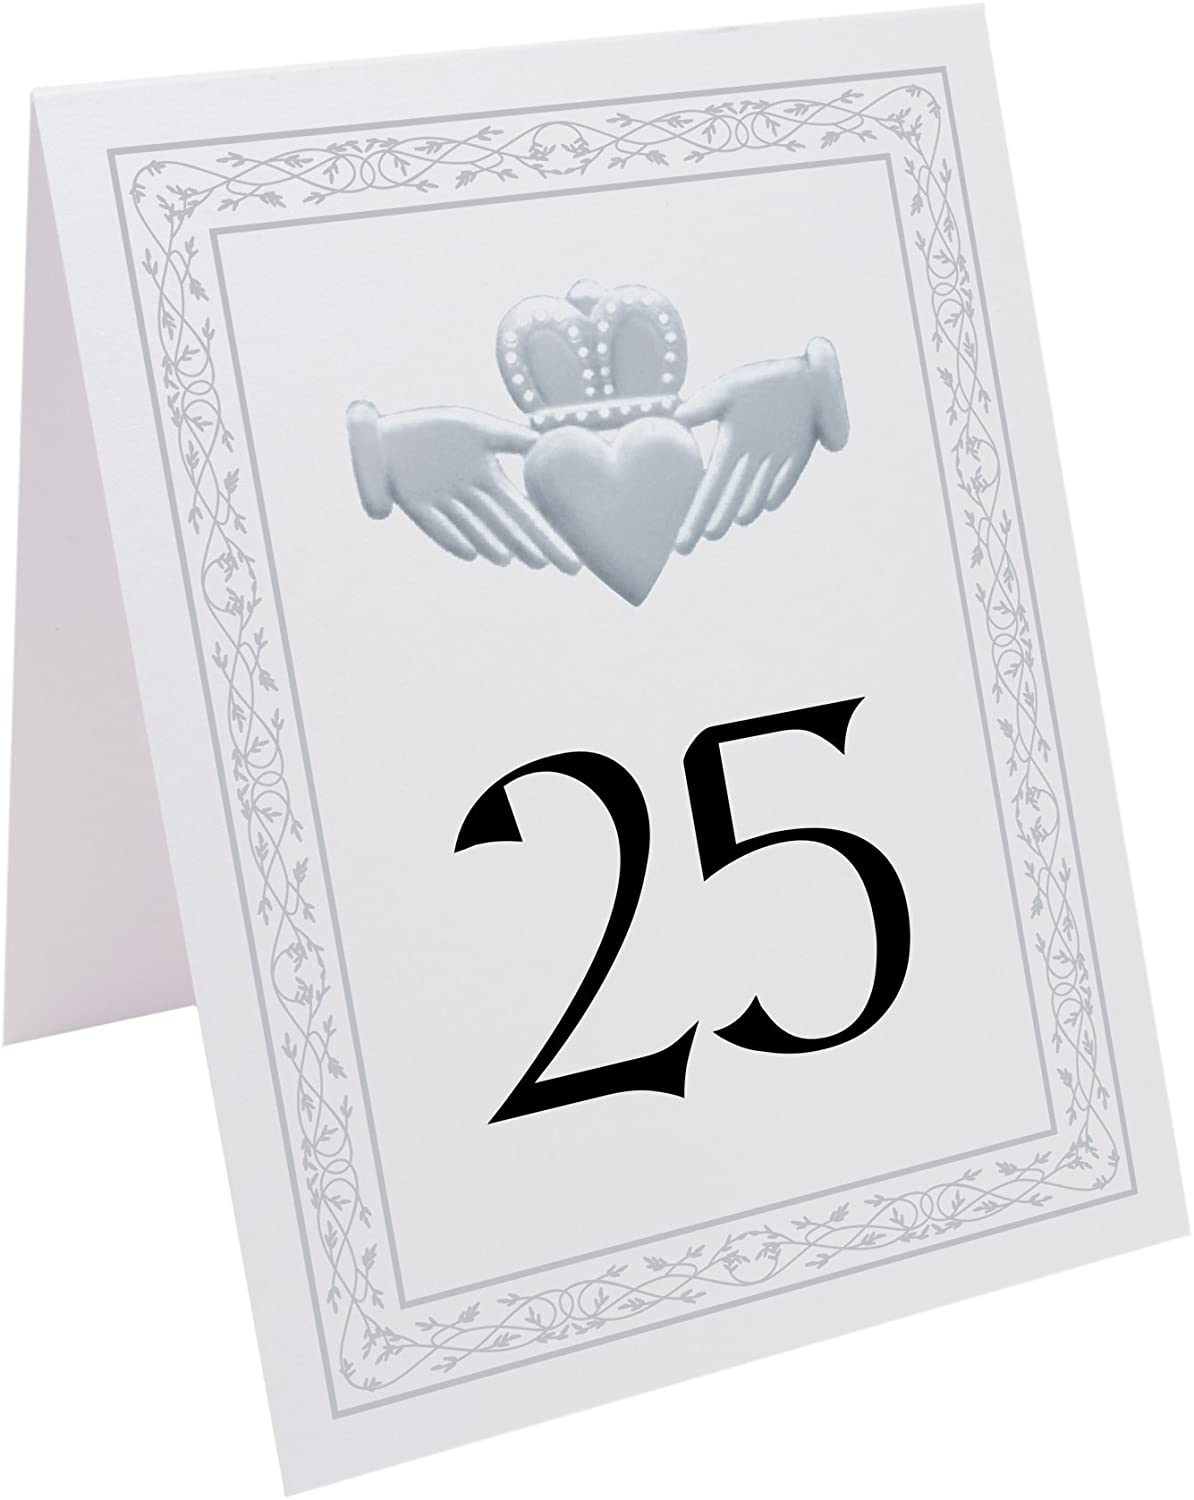 Documents and Designs Silver Claddagh Table Numbers, 1-10, Perfect for a Wedding, Party, Restaurant, or Special Event